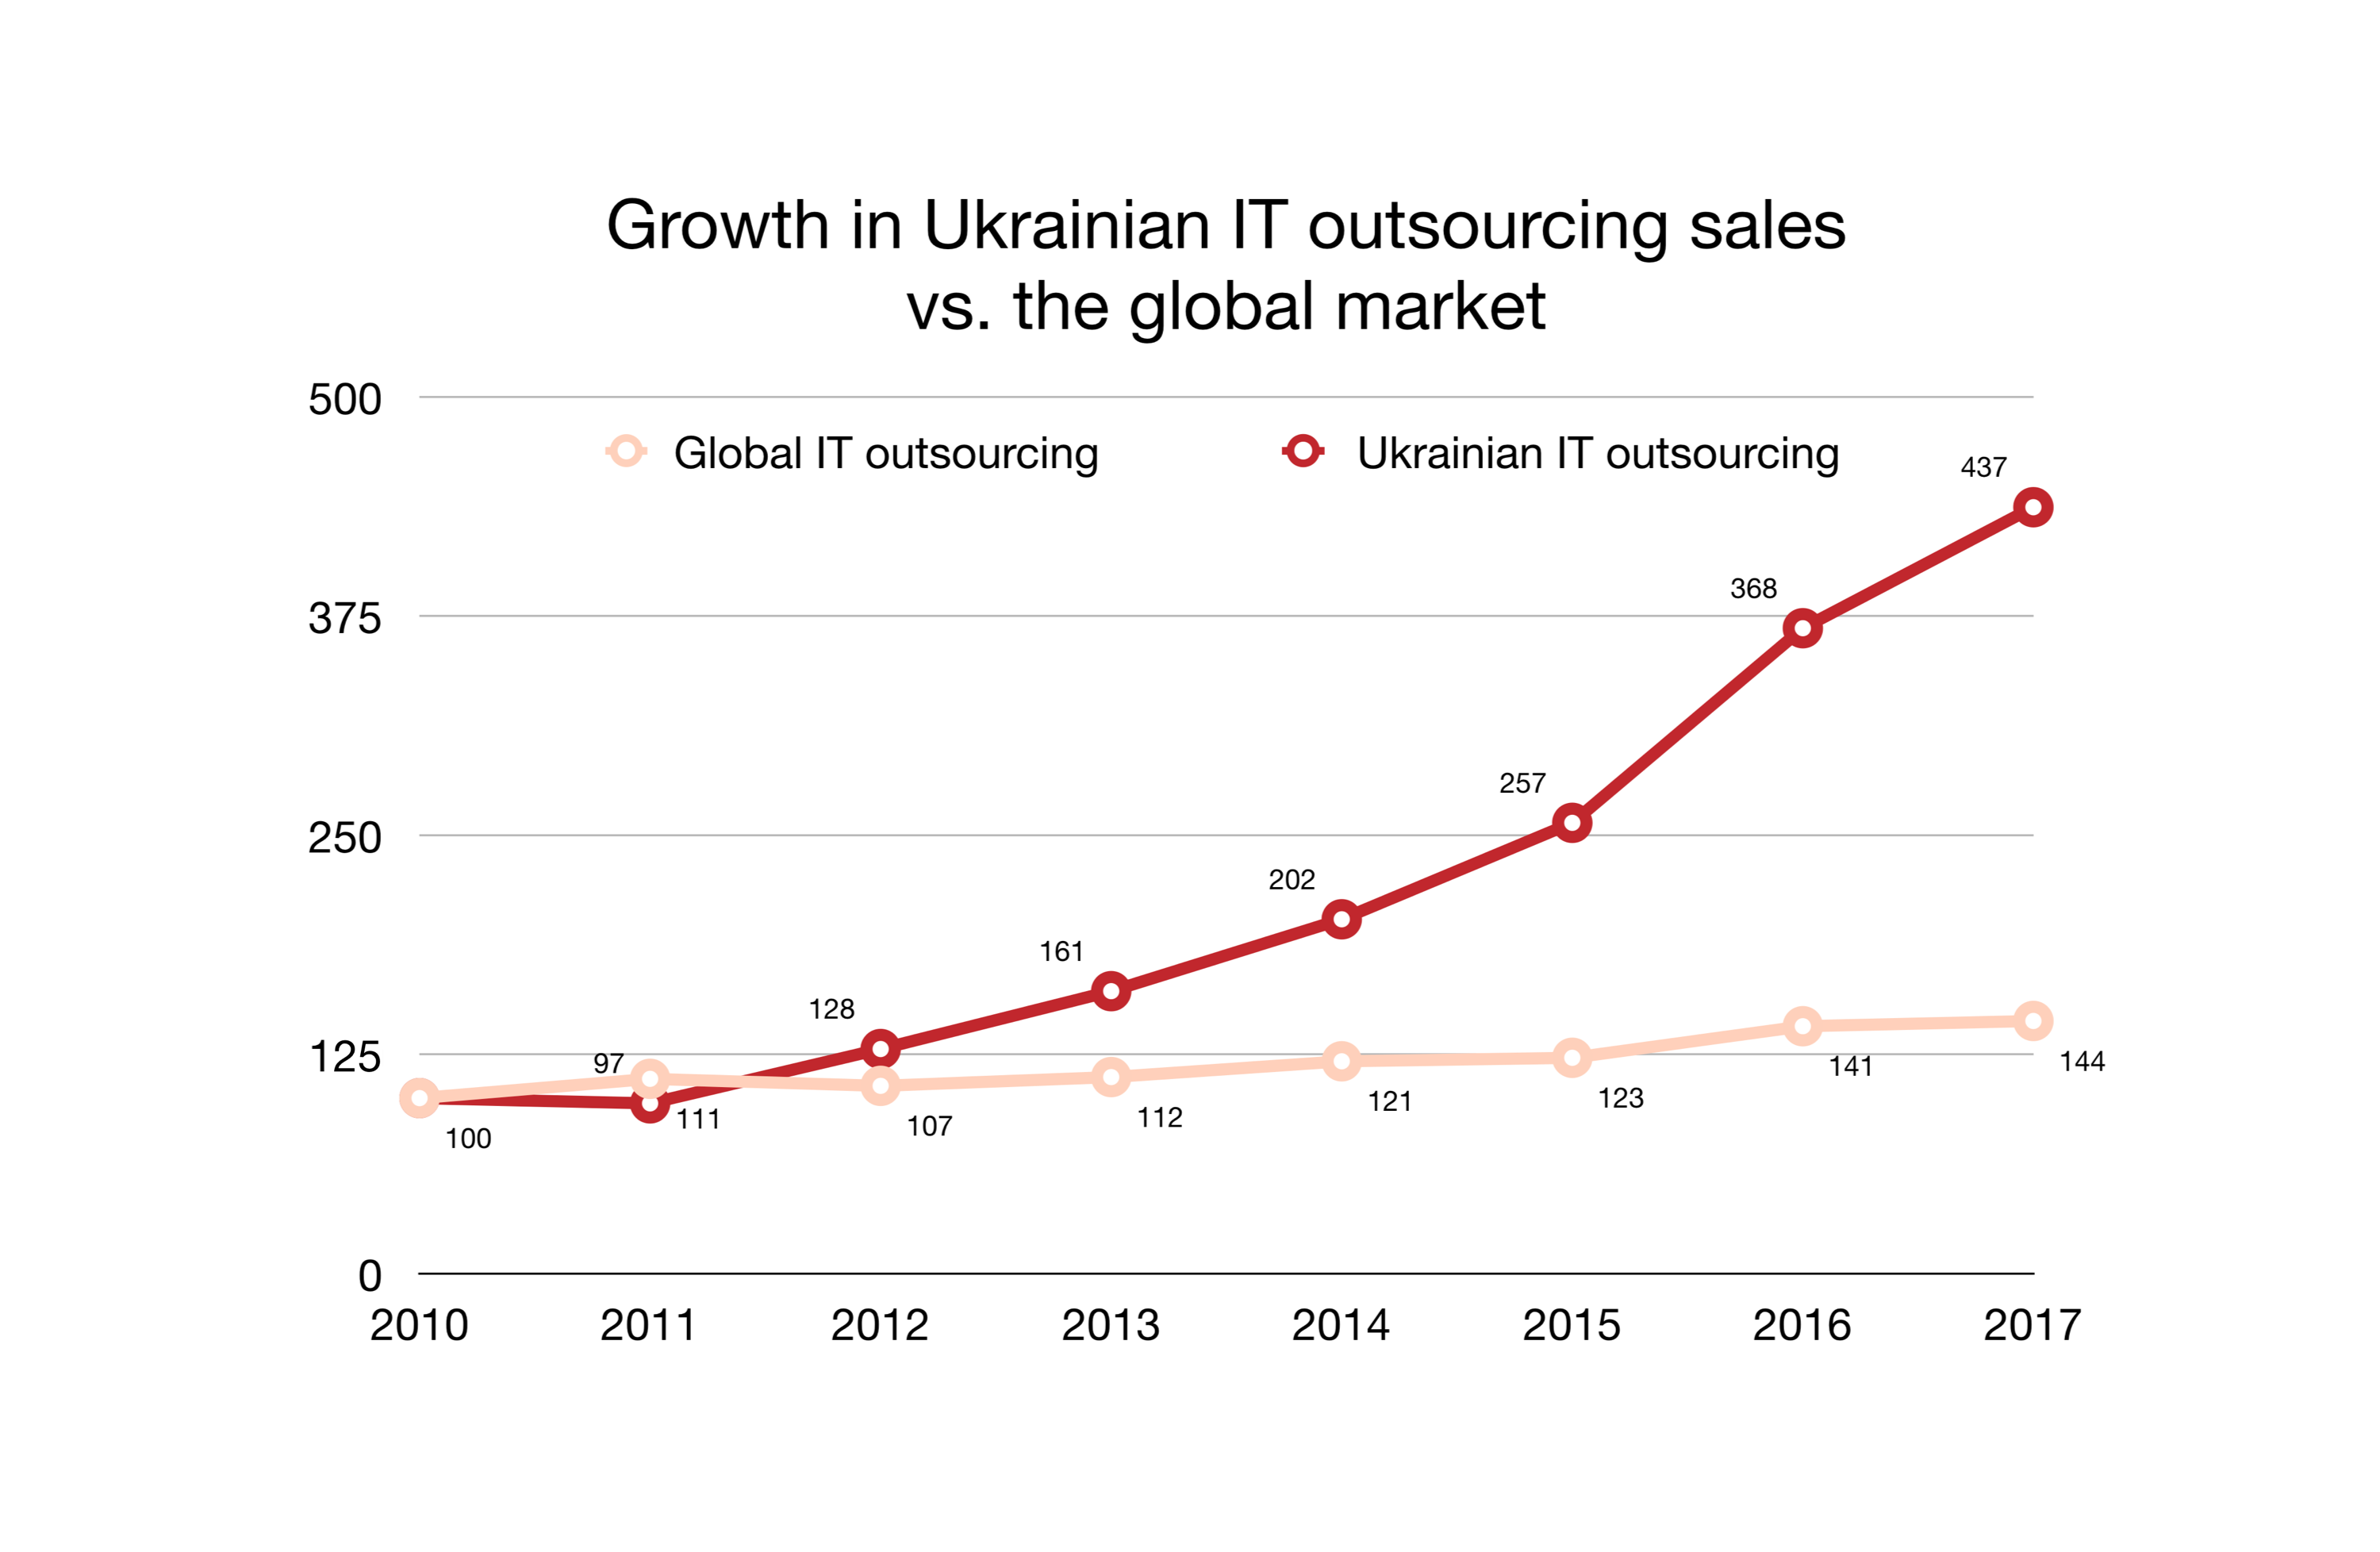 Growth in Ukrainian IT outsourcing sales vs. the global market